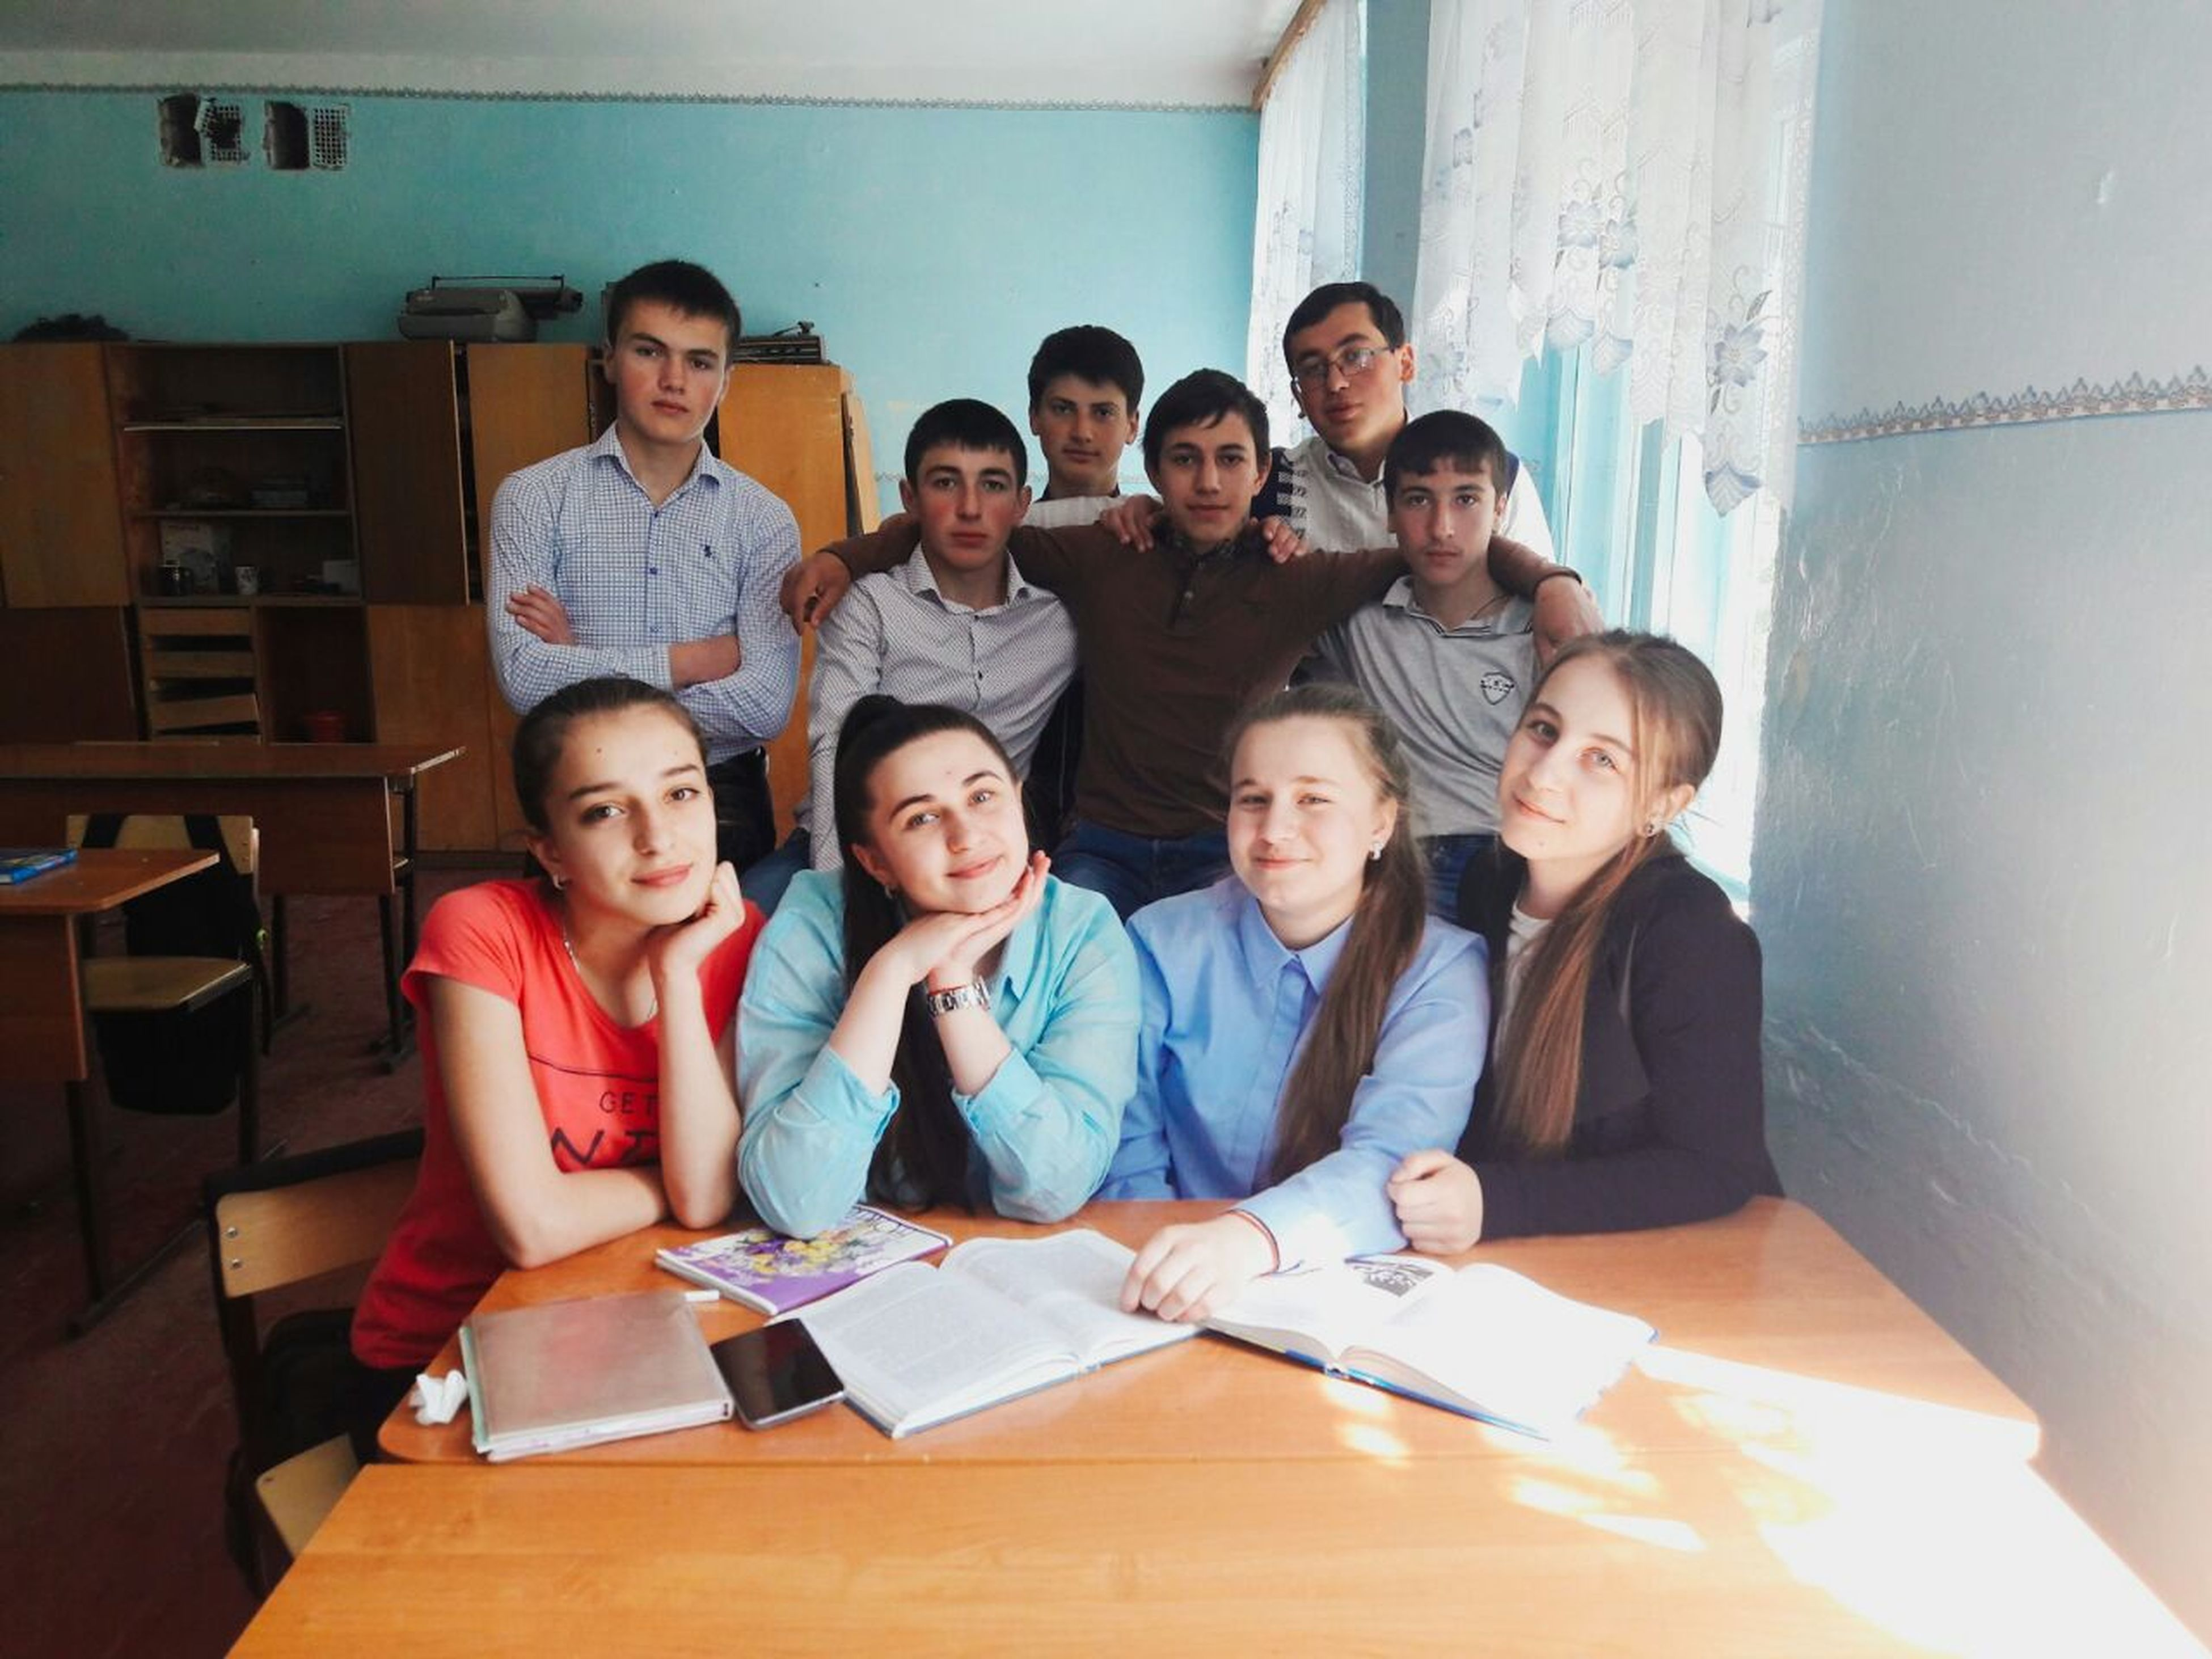 looking at camera, child, sitting, girls, portrait, boys, togetherness, young women, indoors, young adult, classroom, people, men, education, learning, teamwork, student, women, smiling, occupation, adult, cooperation, day